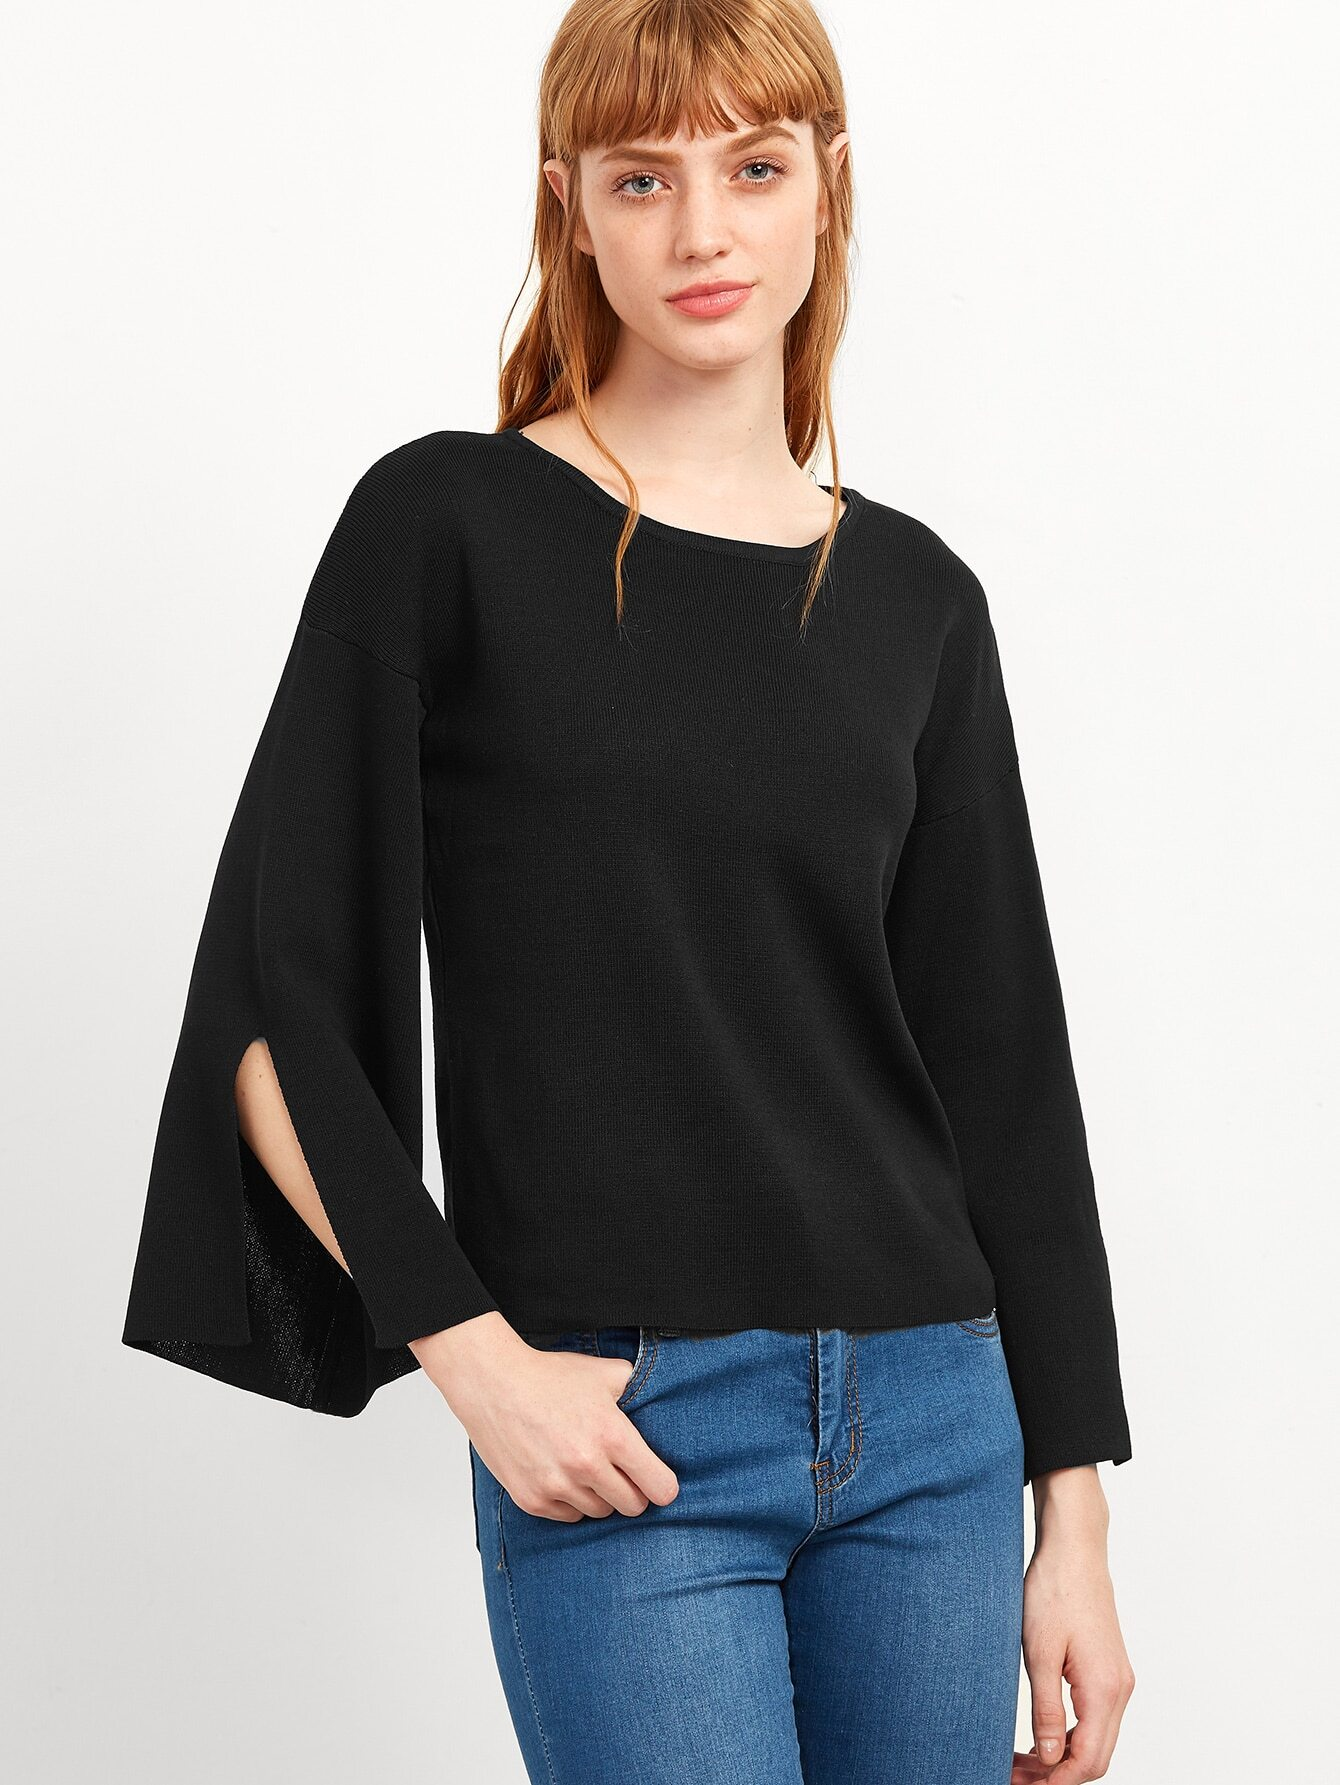 Black Split Sleeve Knitwear sweater161004104